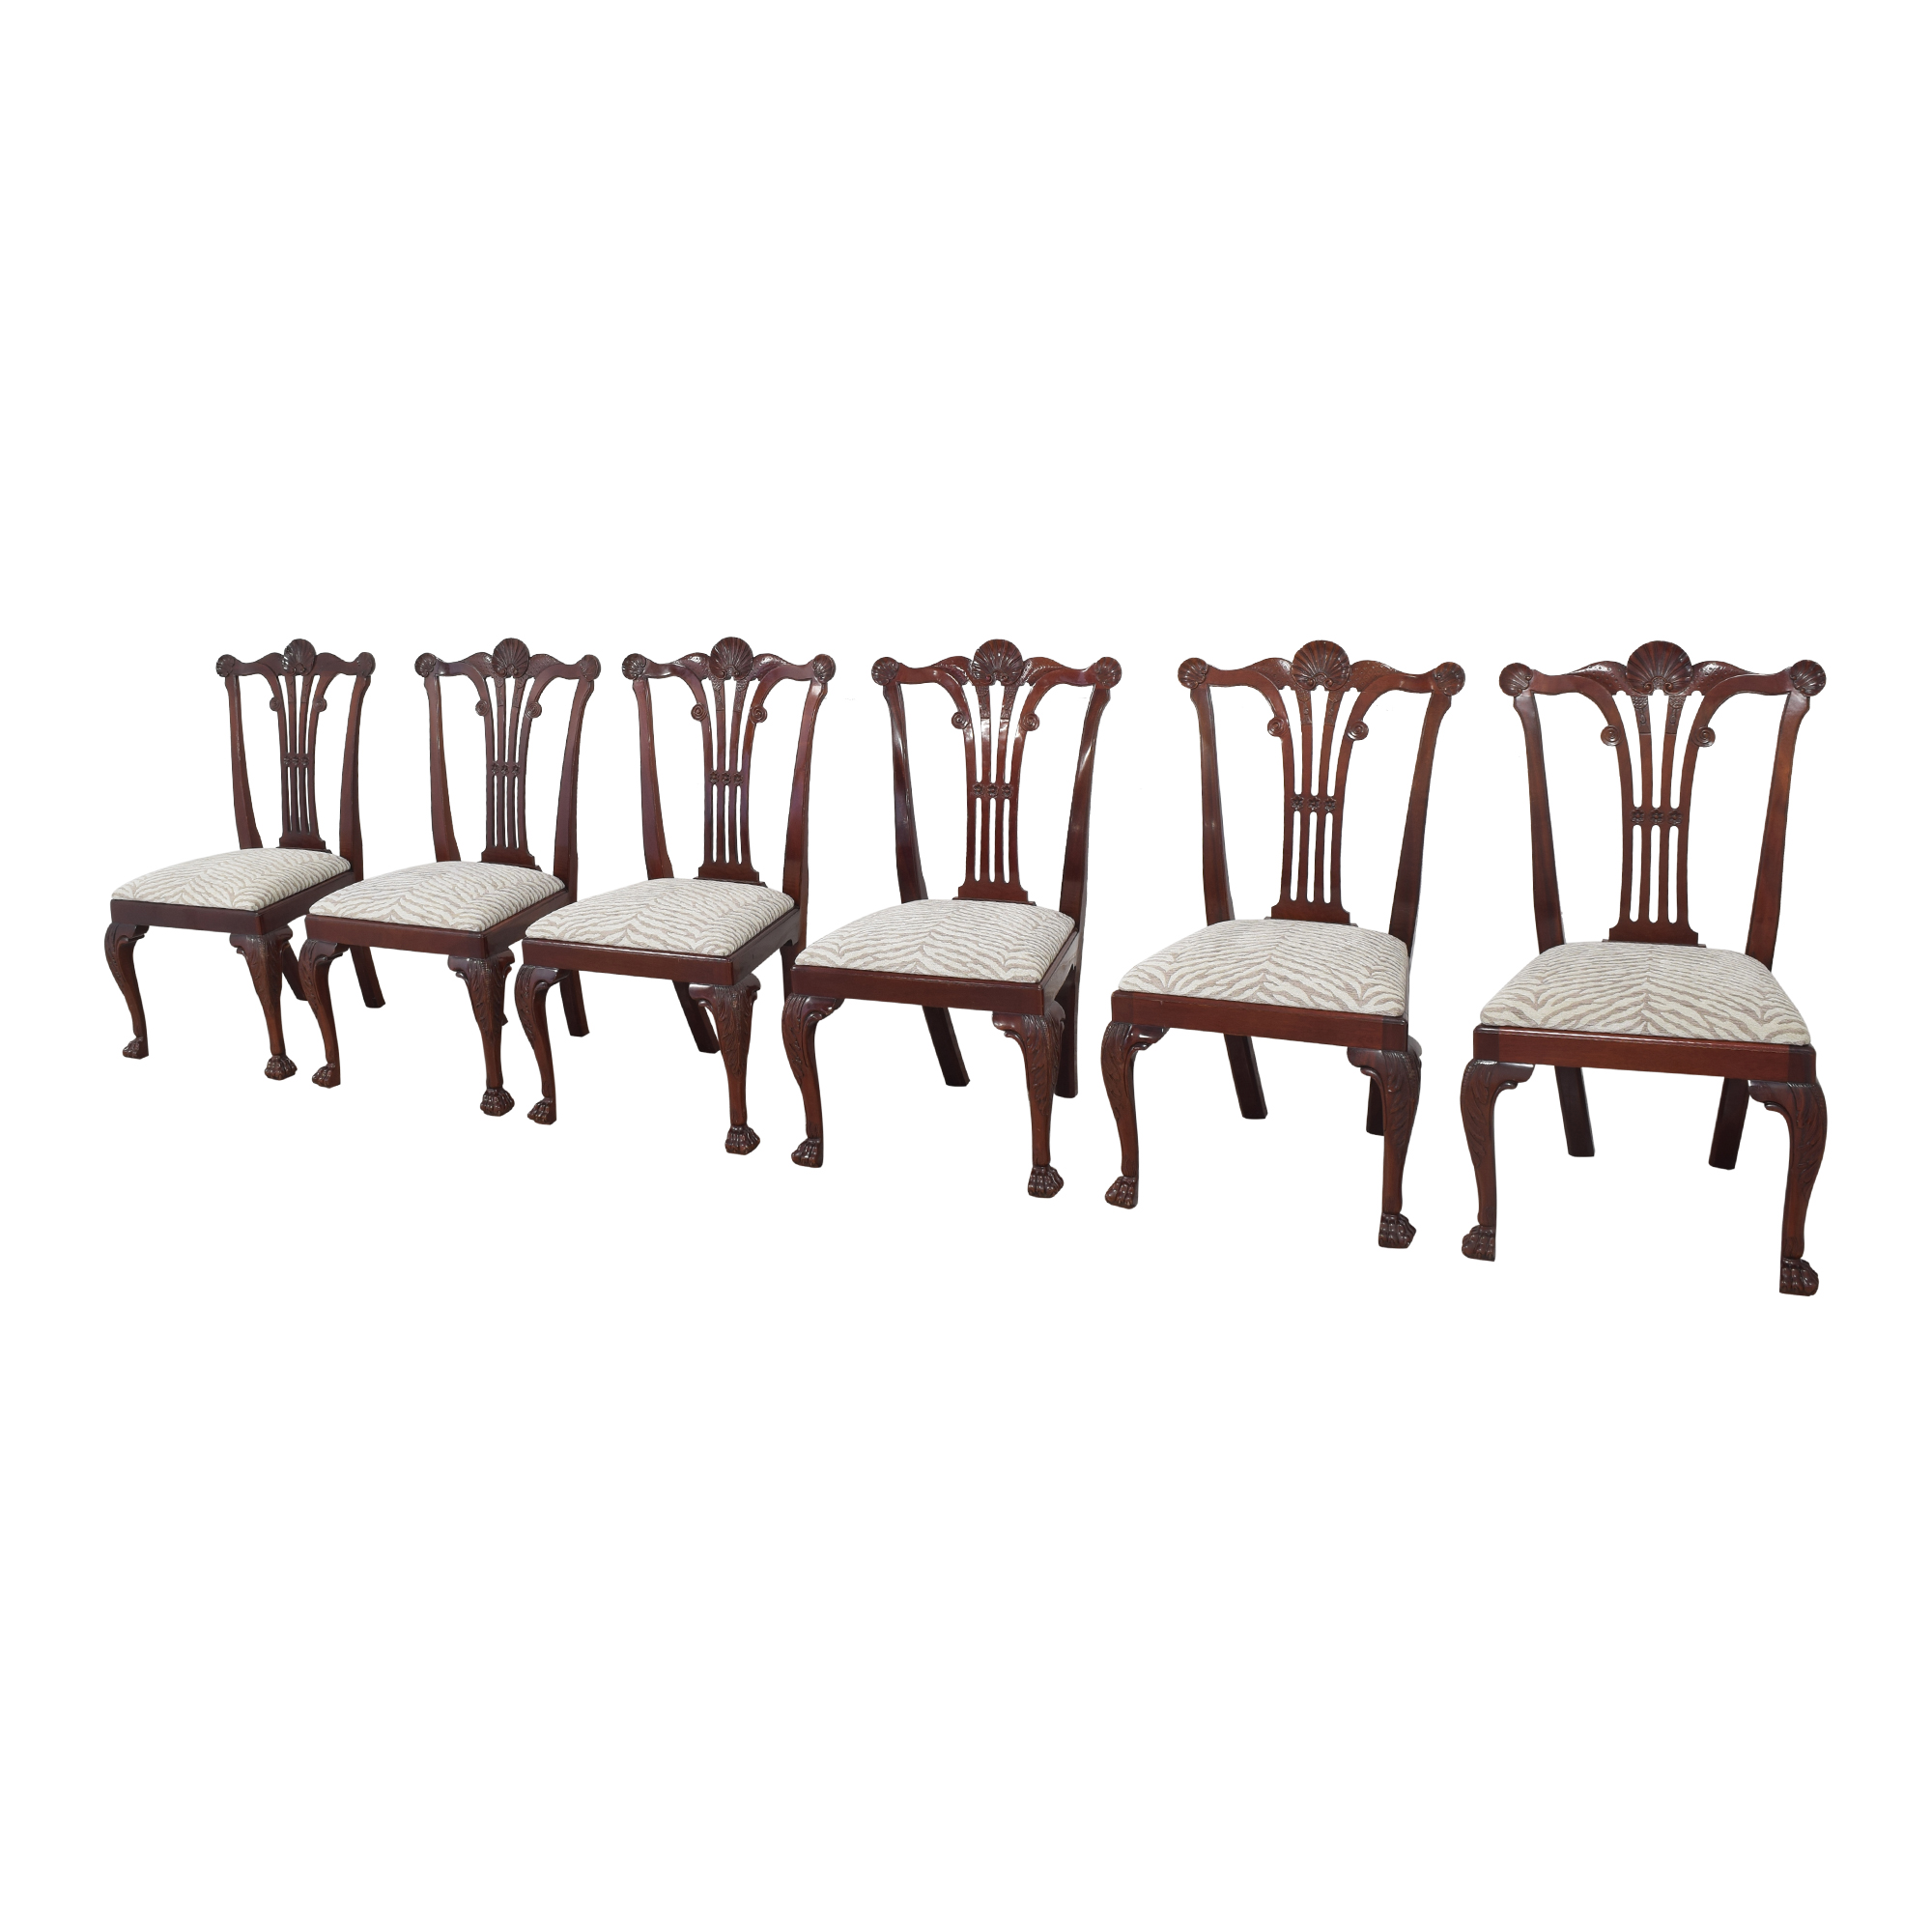 buy Kindel Kindel Chippendale-Style Dining Side Chairs online